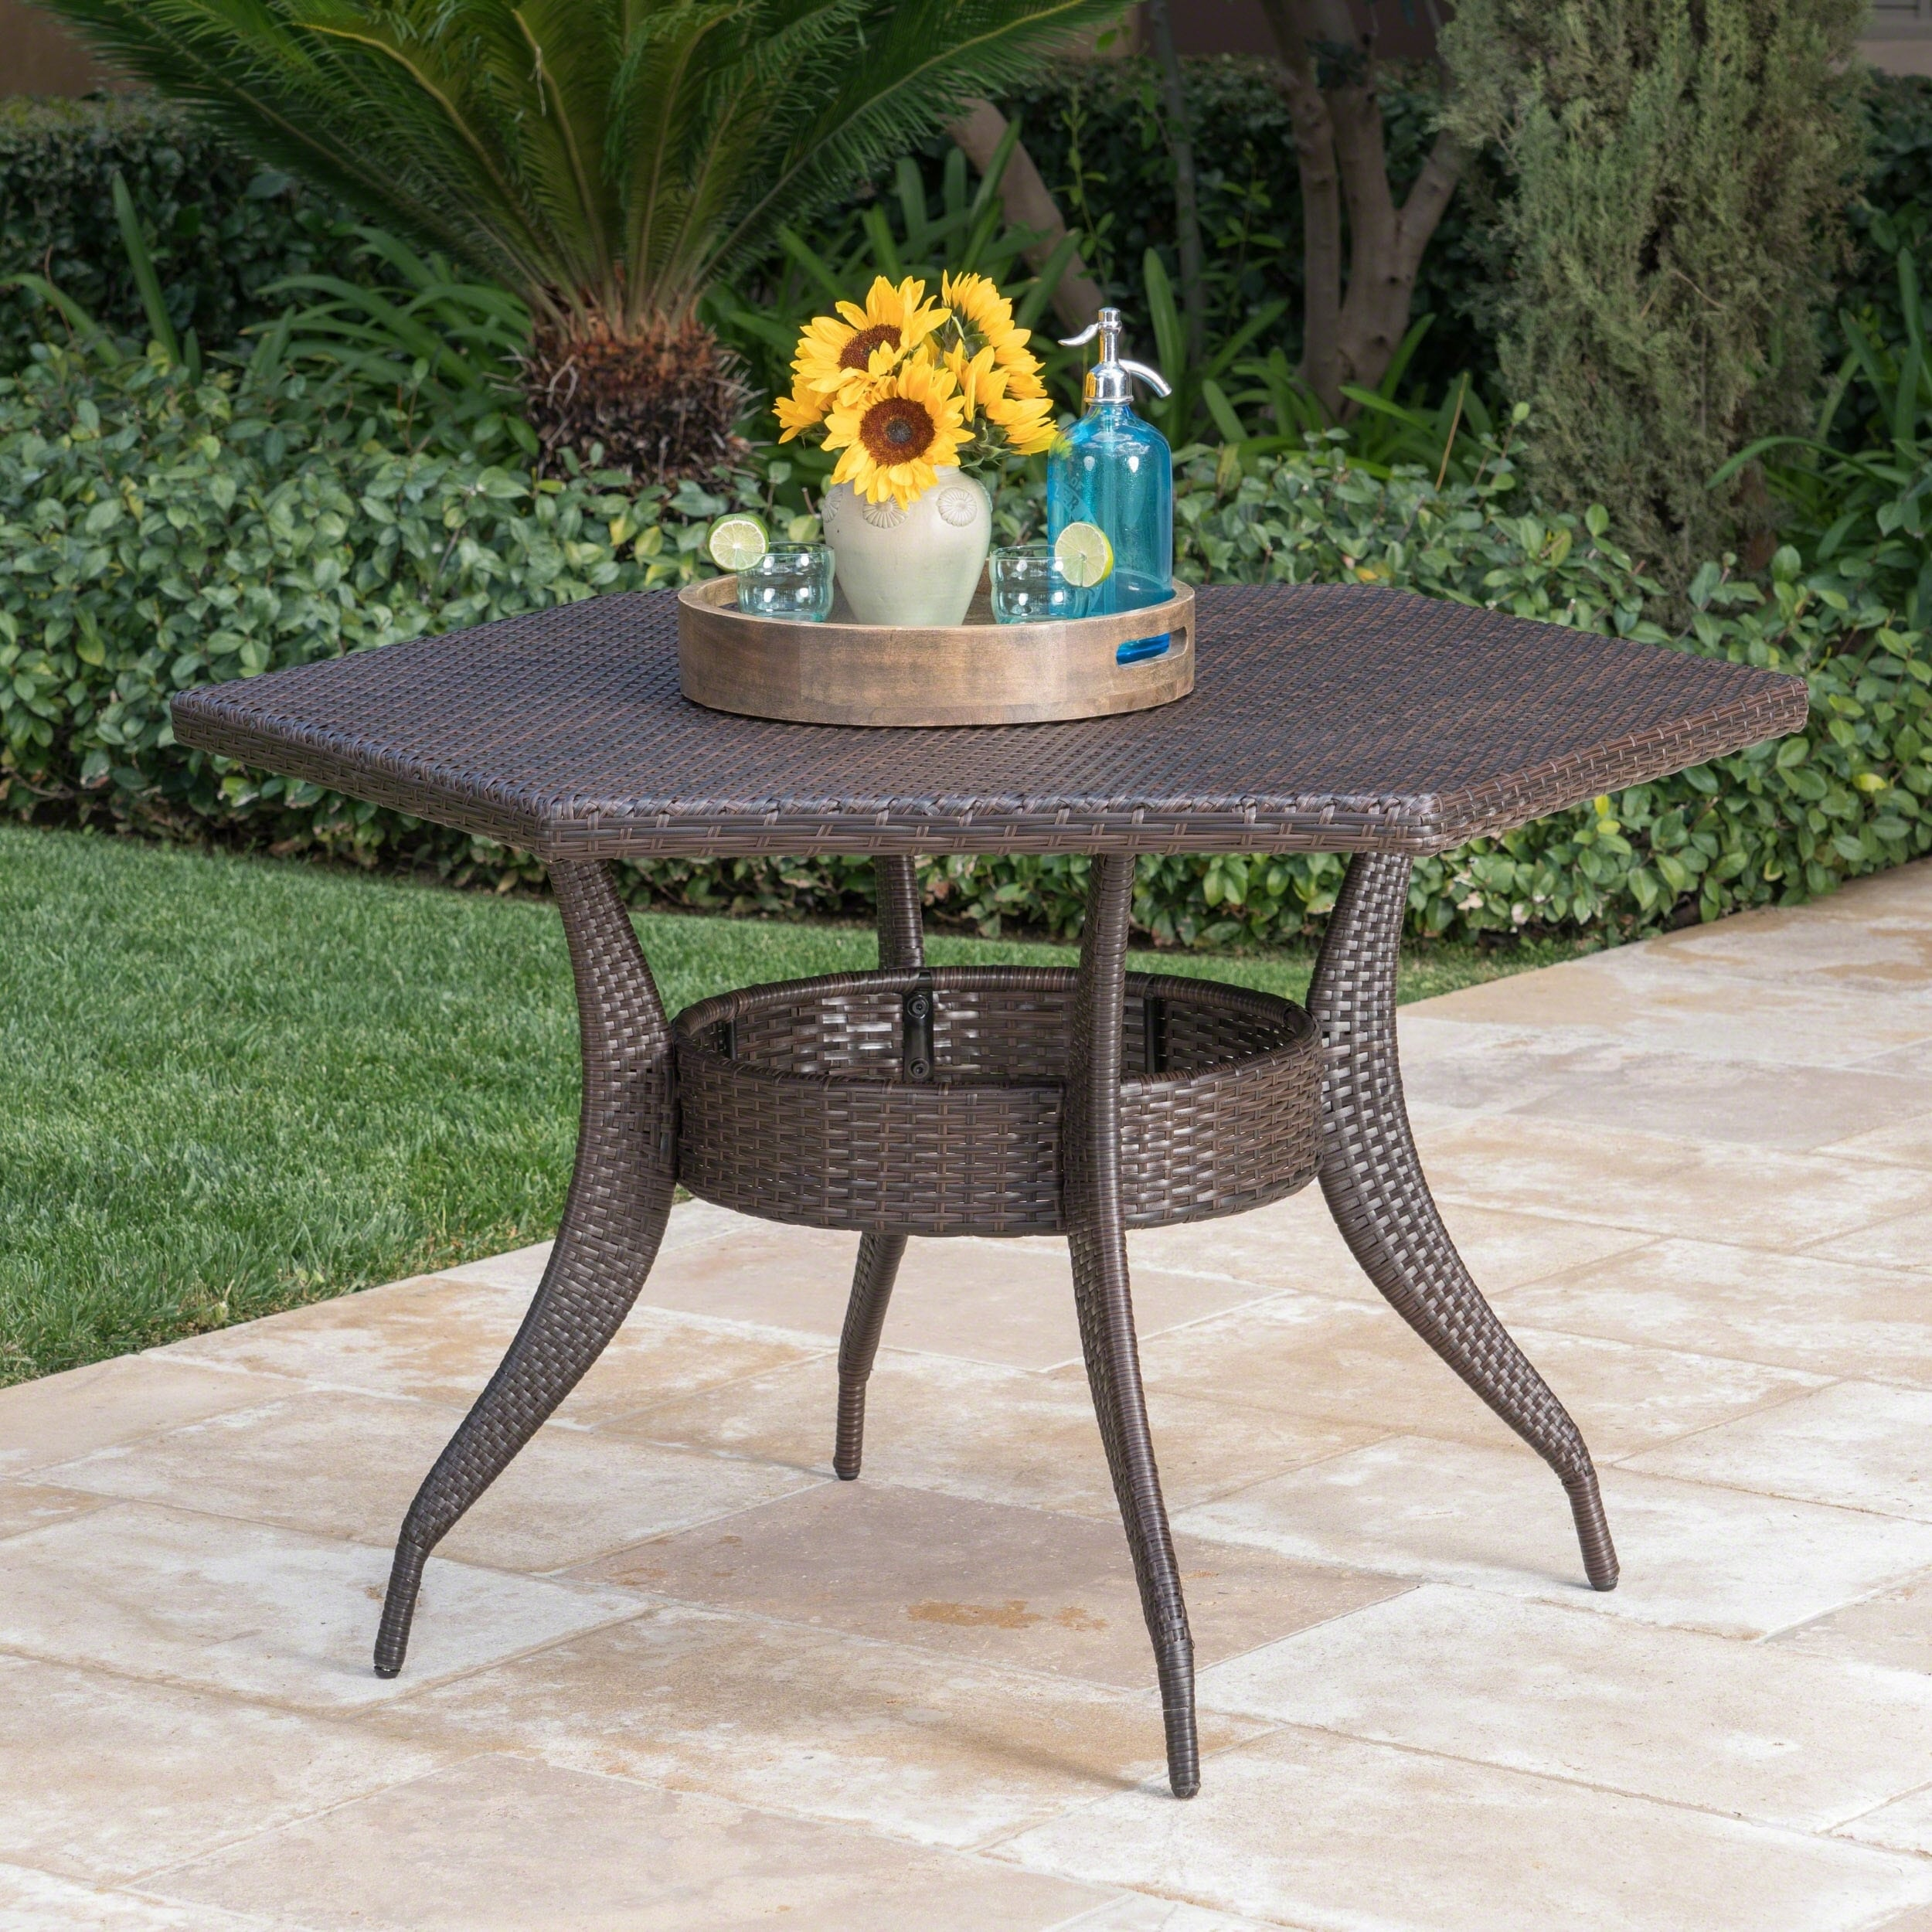 Buy Rustic Outdoor Dining Tables Online at Overstock | Our ...